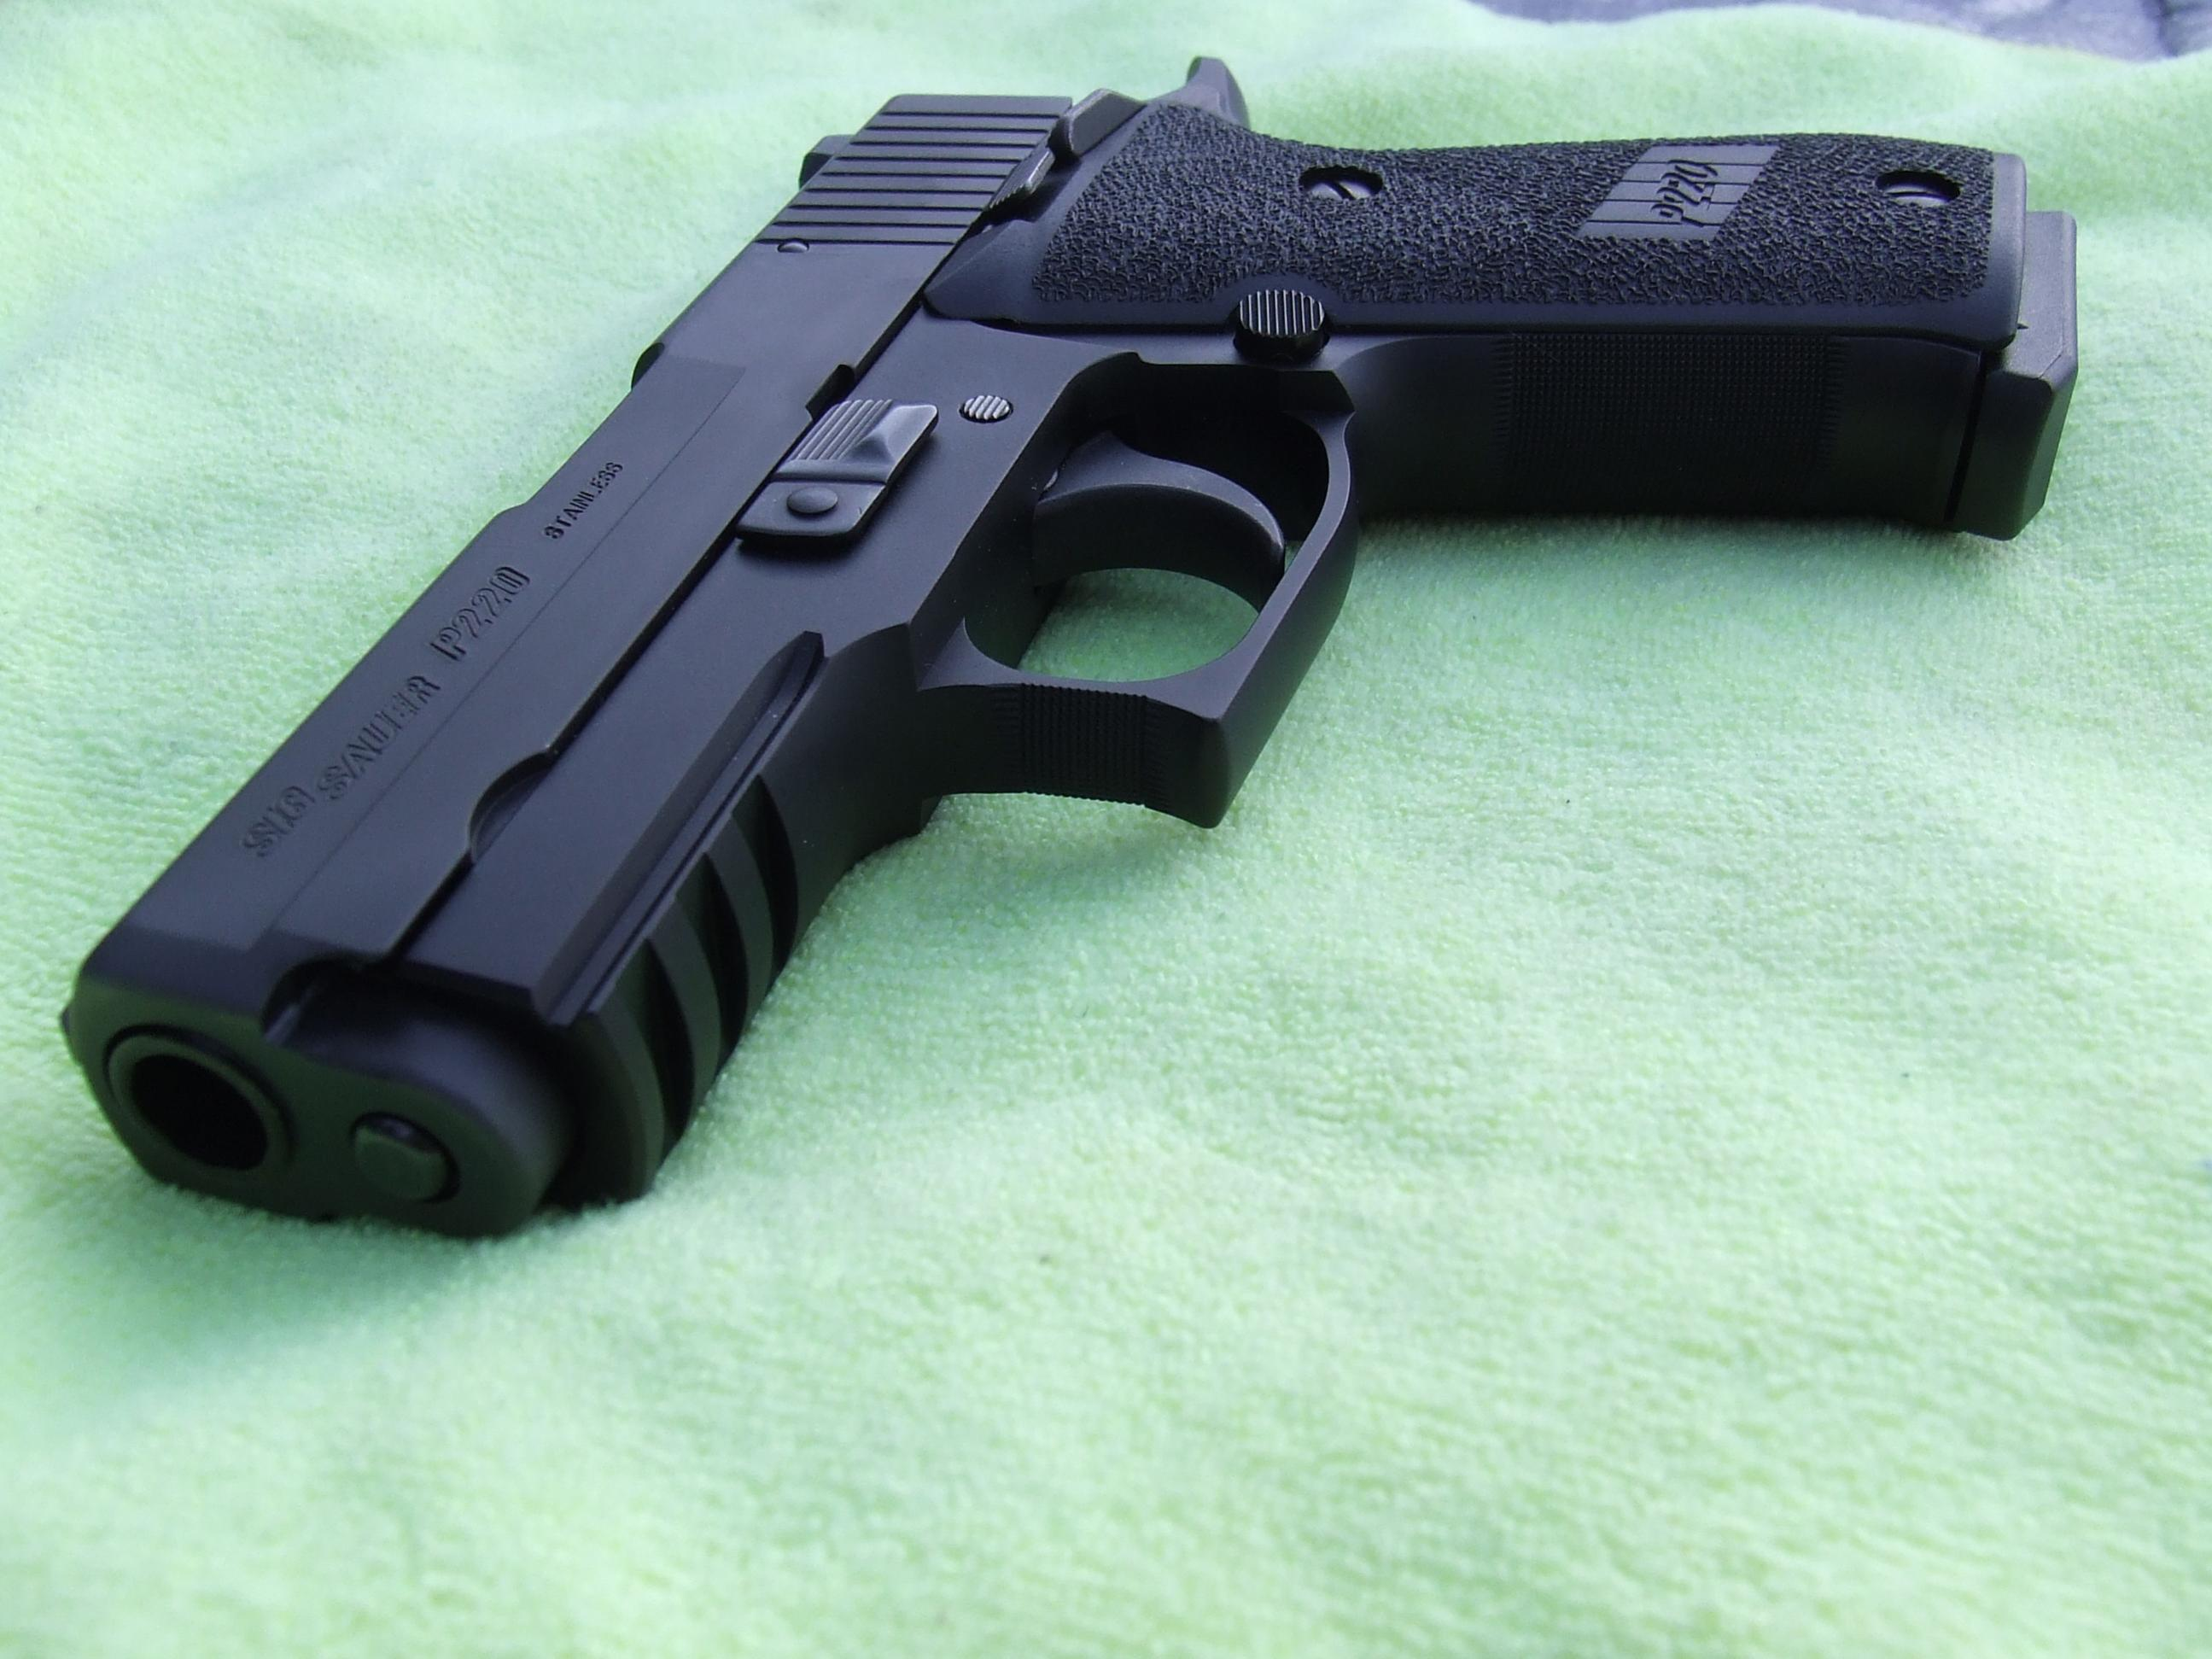 Need some info on the SIG P220 Carry SAS-dscf0399.jpg